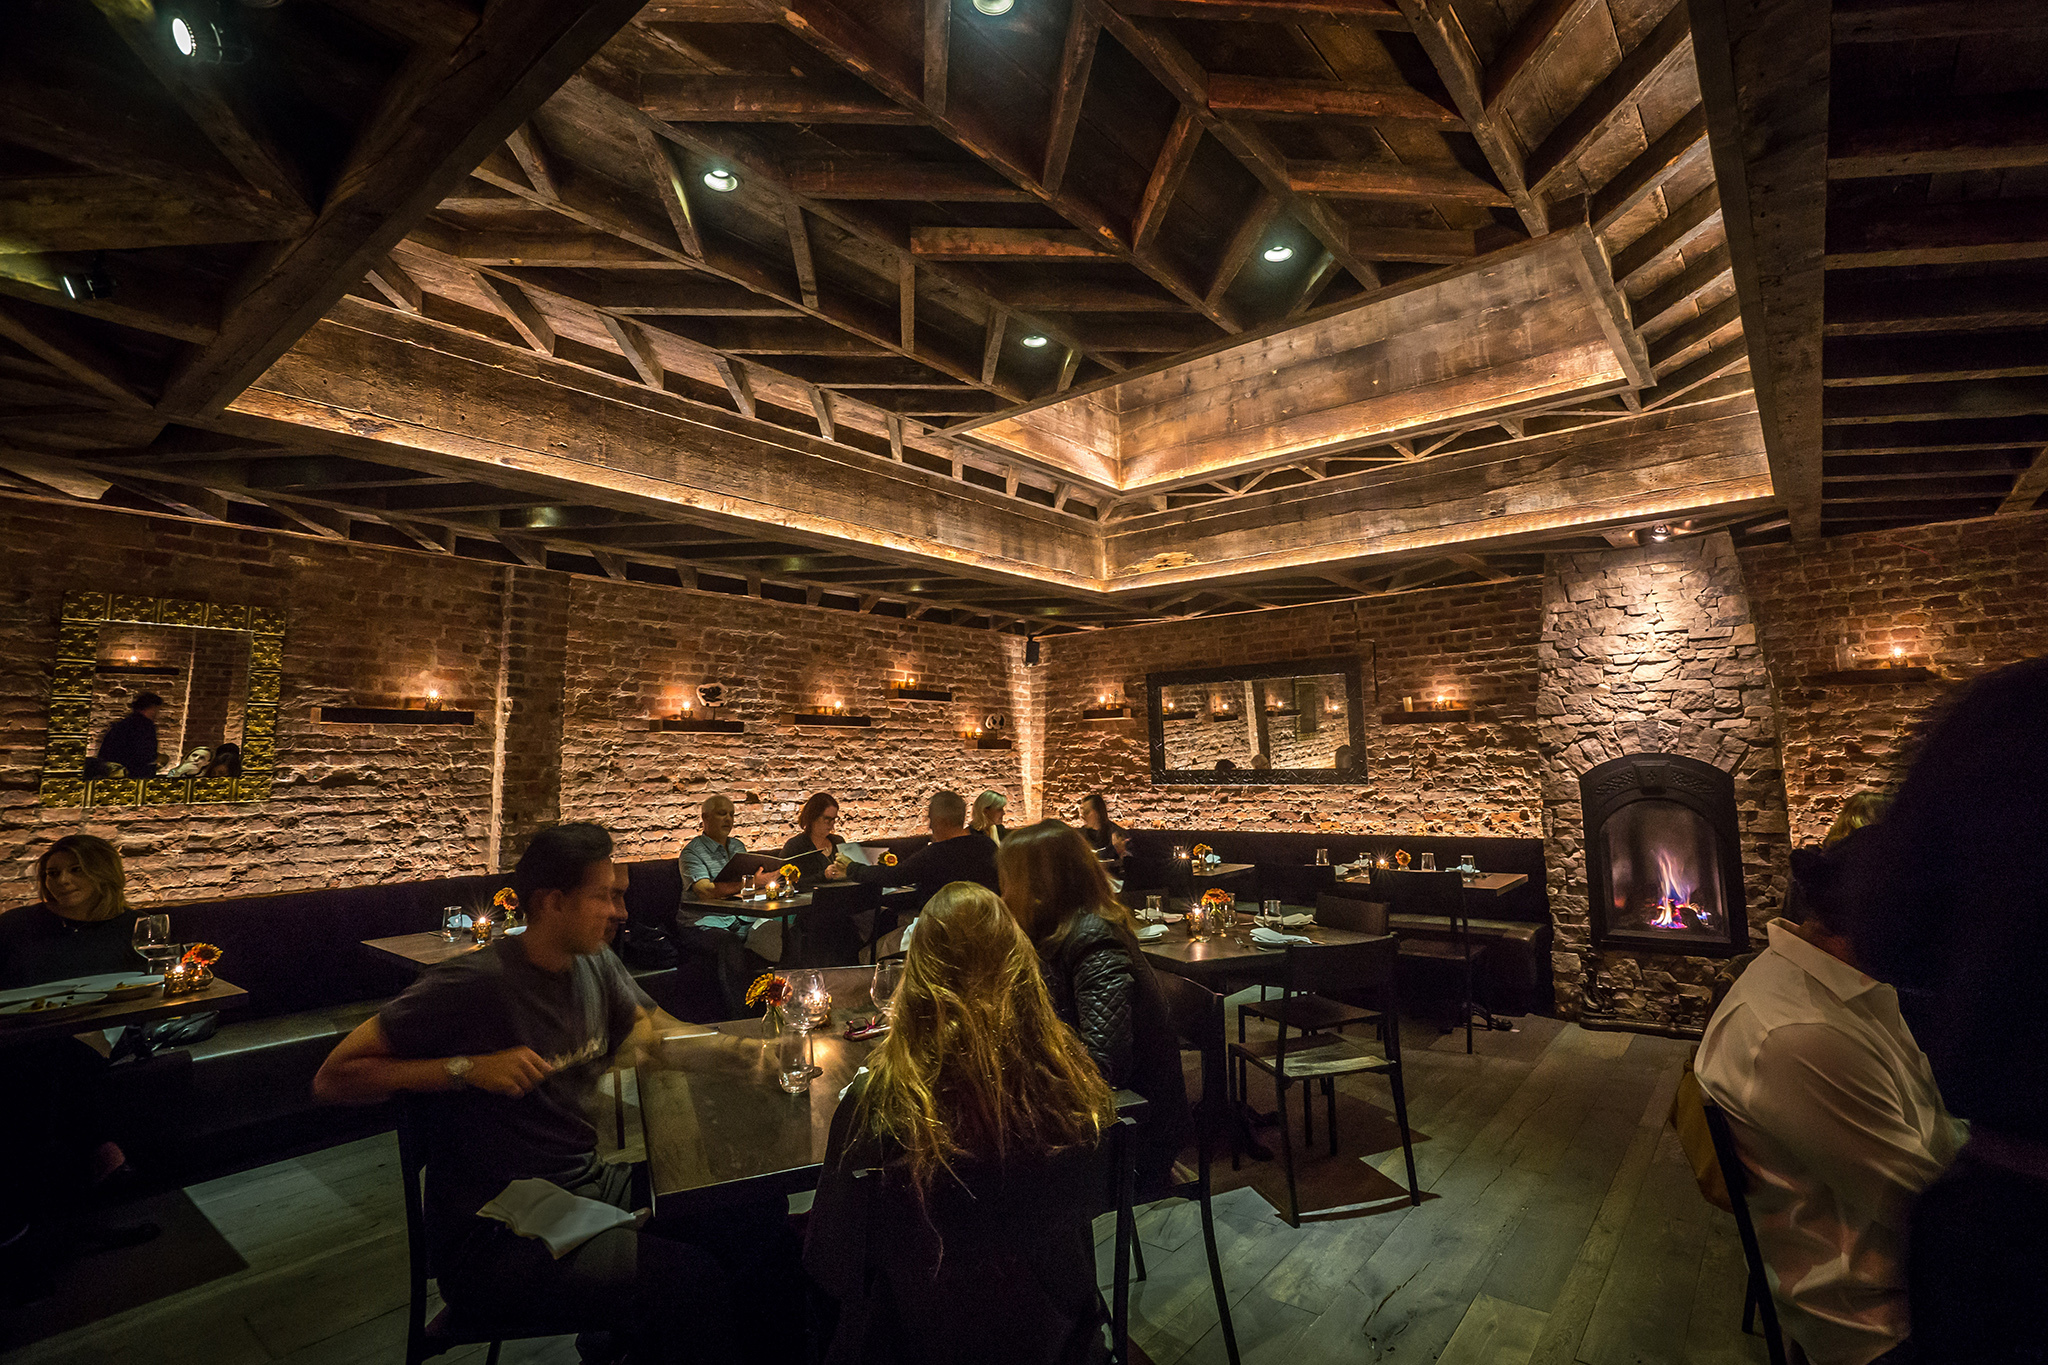 most romantic restaurants in nyc for date night